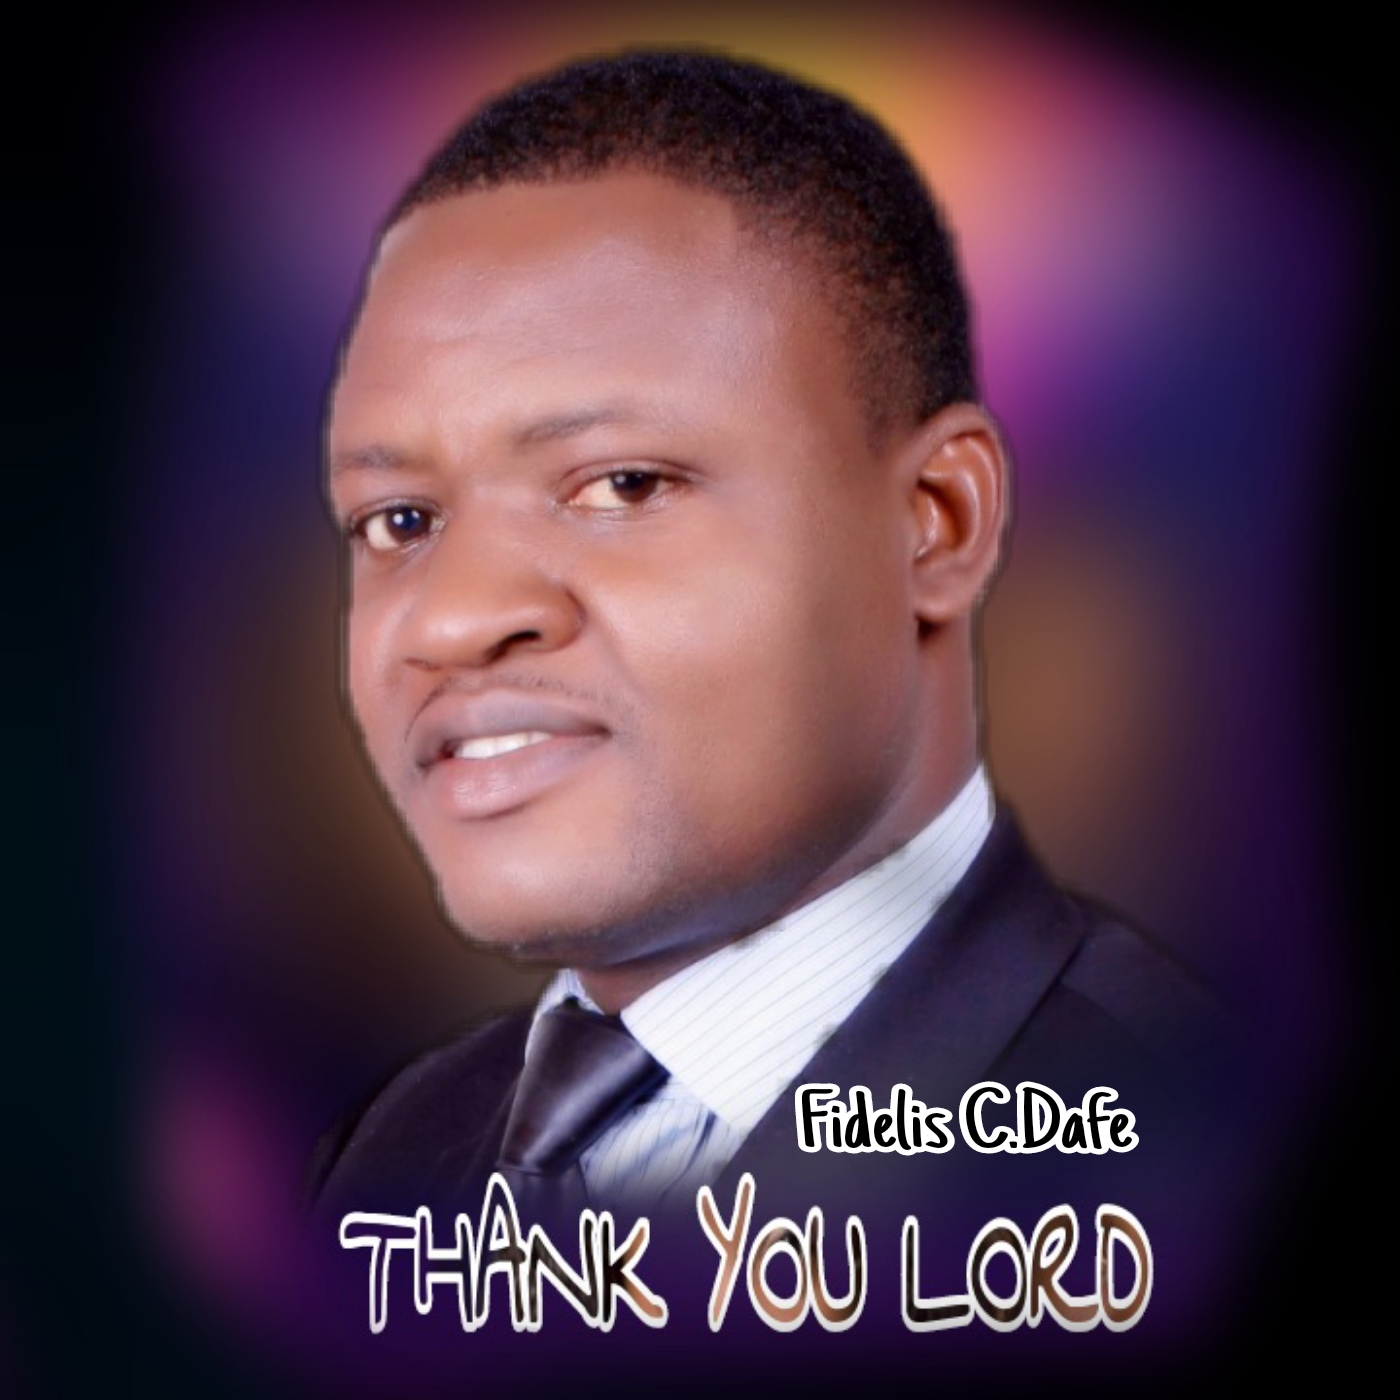 THANK YOU LORD - Fidelis C.Dafe [@FidelisCDafe1]